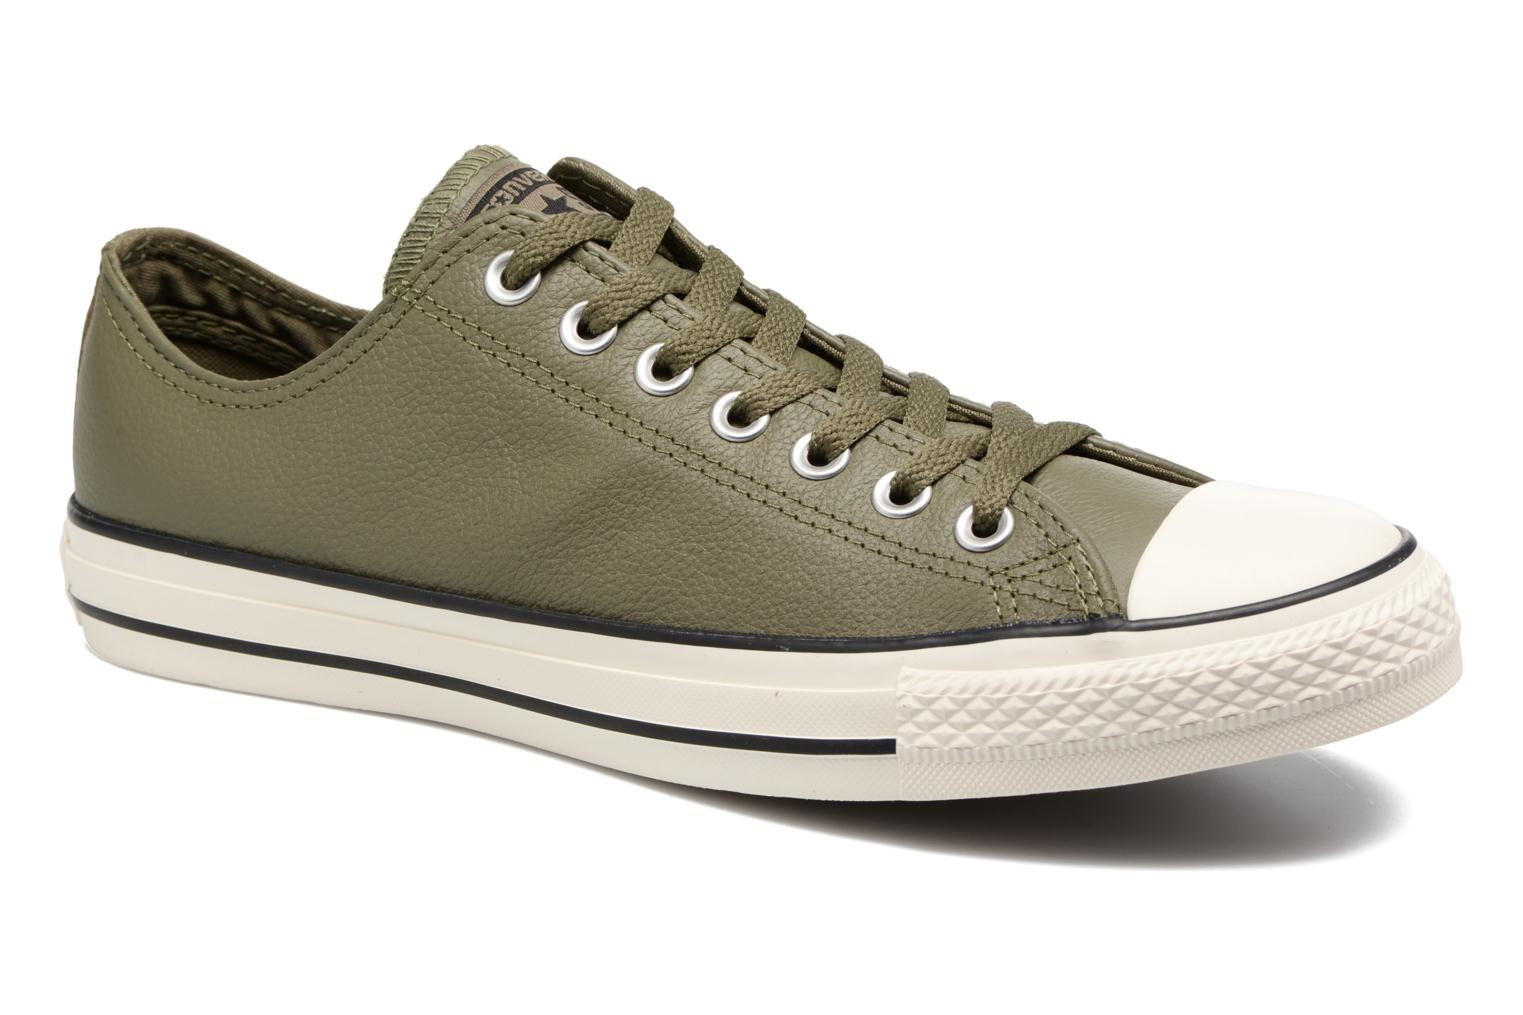 Chuck Taylor All Star Tumble Leather Ox by Converse